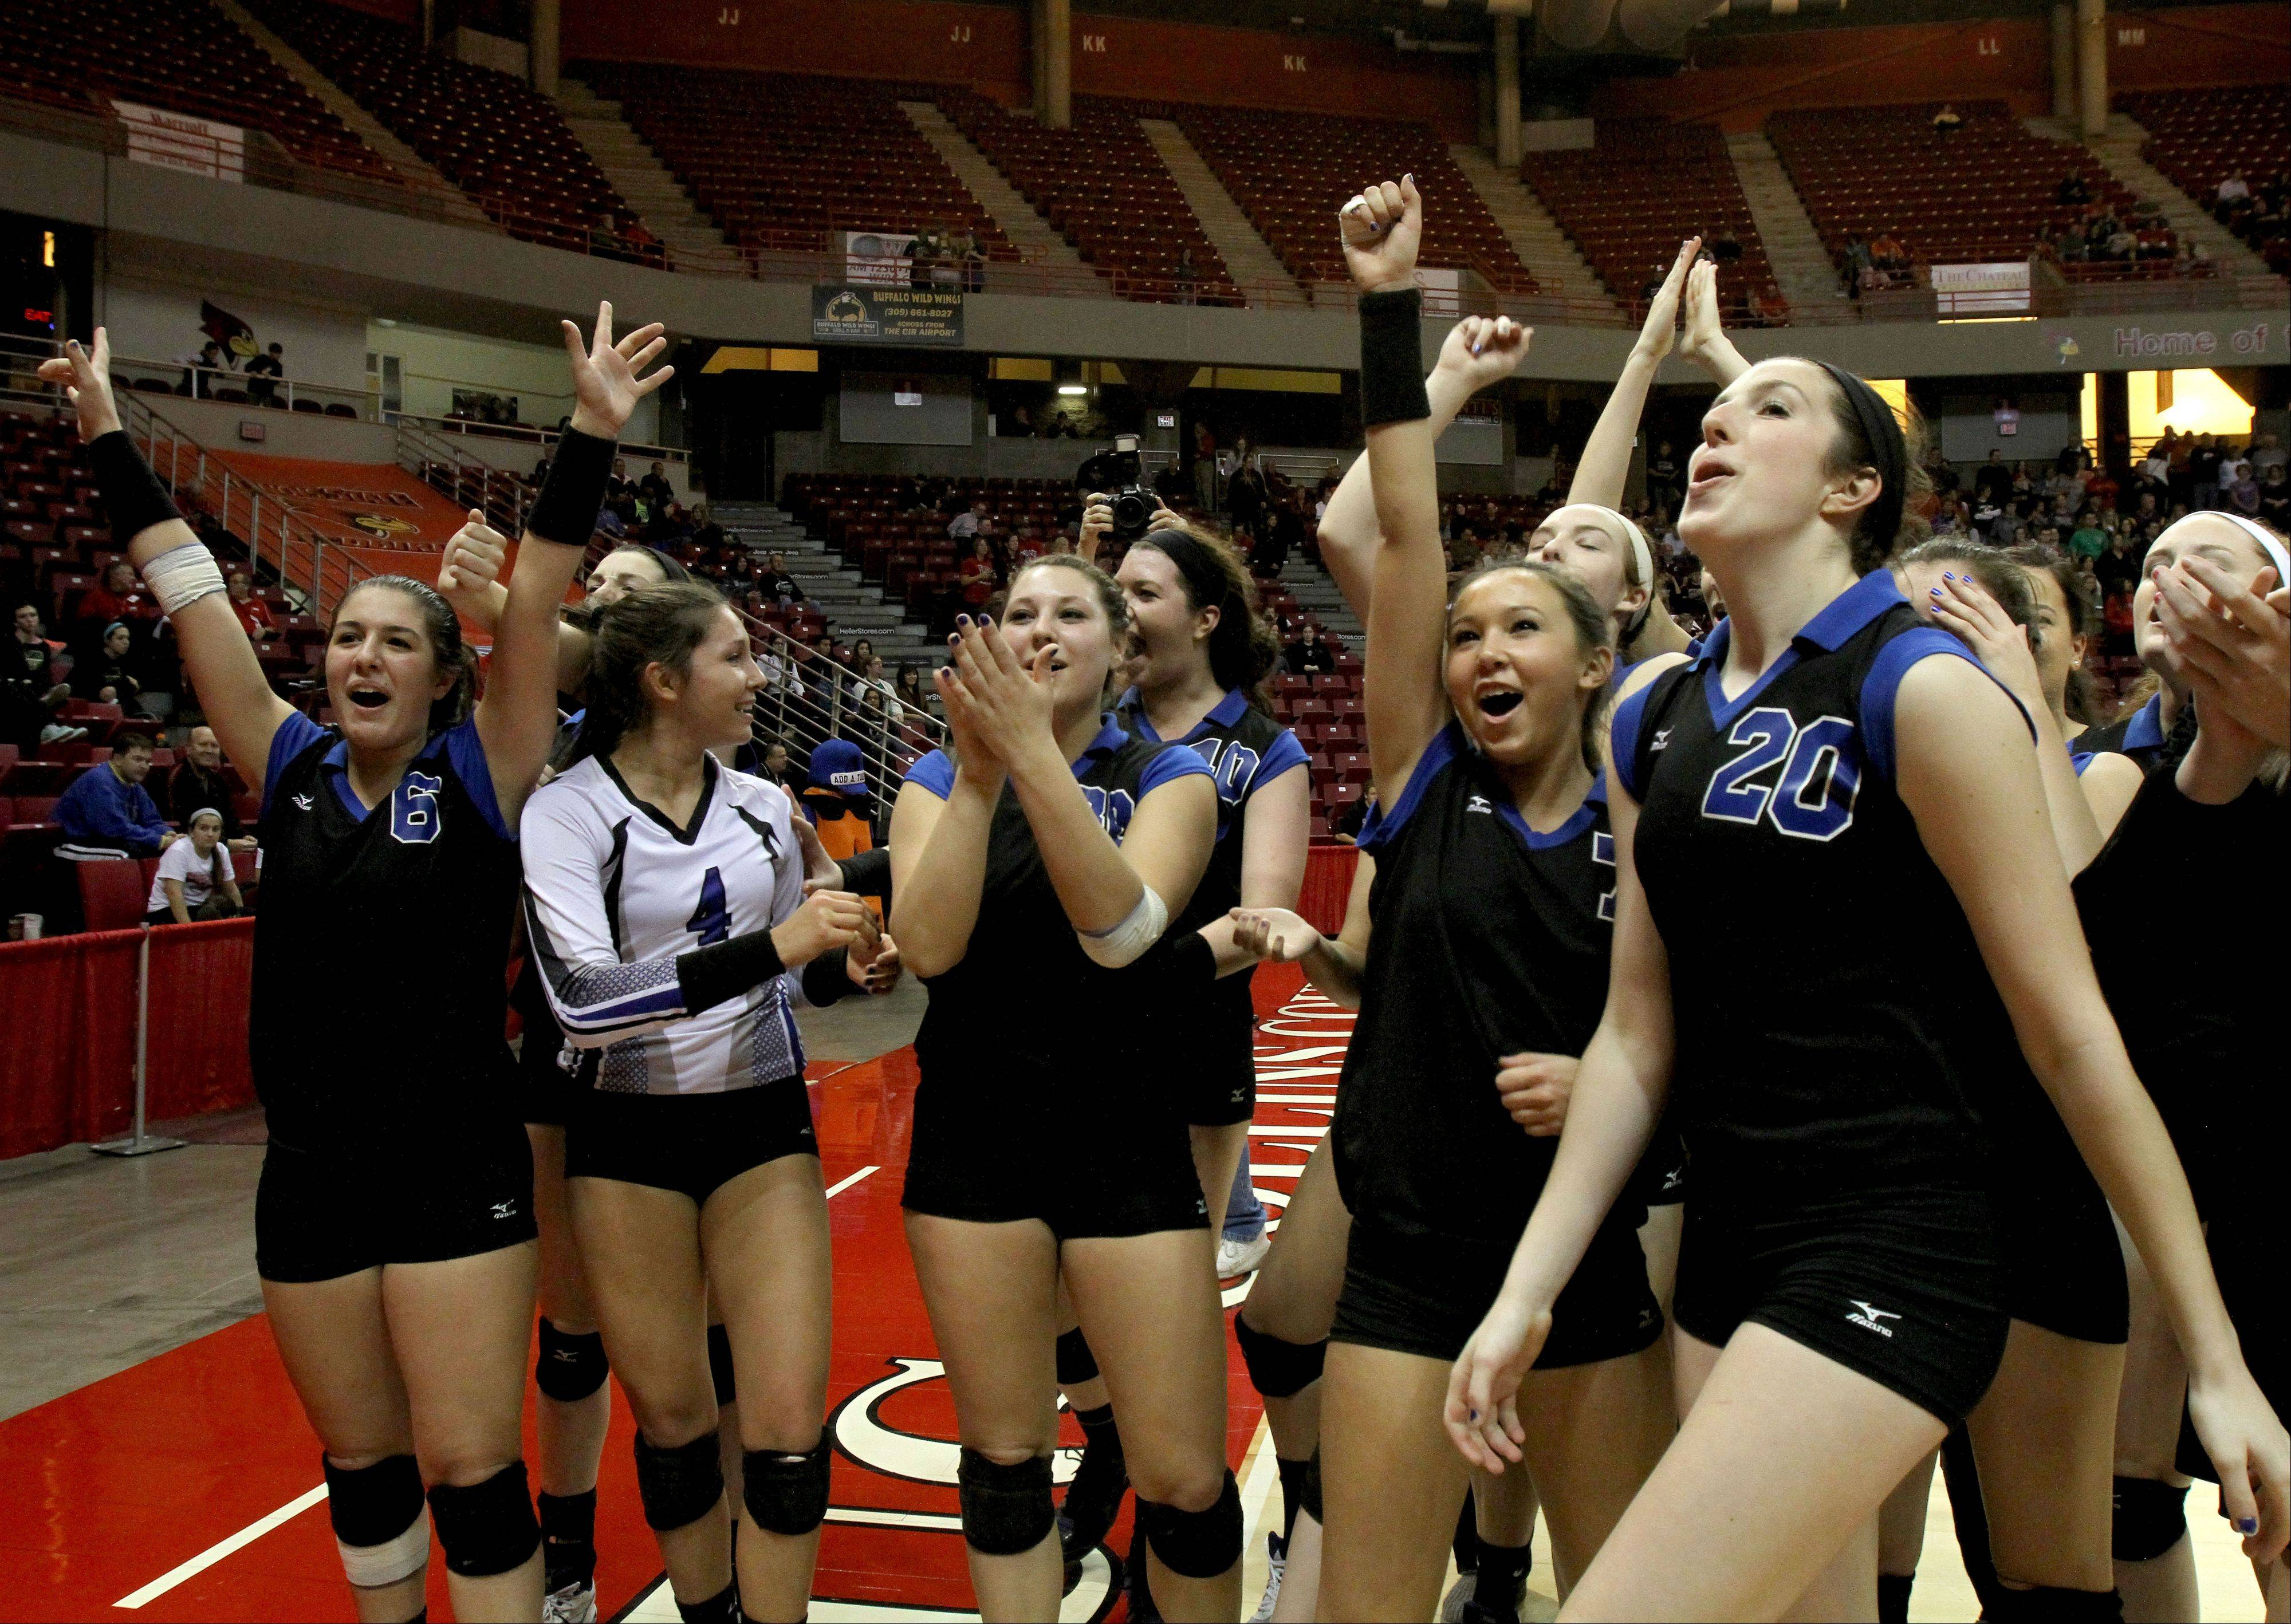 St. Francis greet their fans after winning the Class 3A championship in girls volleyball on Saturday in Normal.